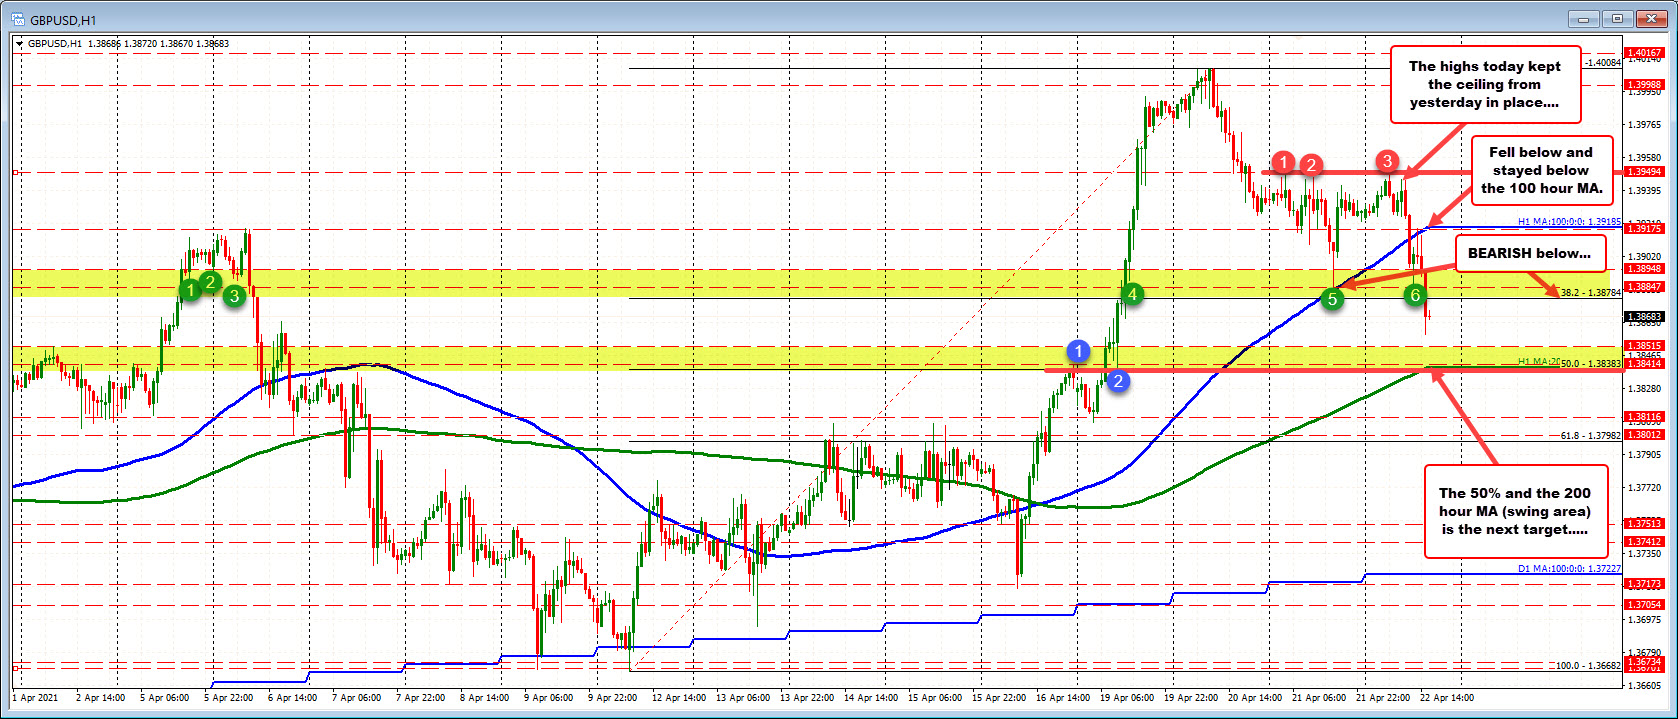 GBPUSD corrects toward the 200 hour MA and 50% midpoint of the move up from April 12 low.